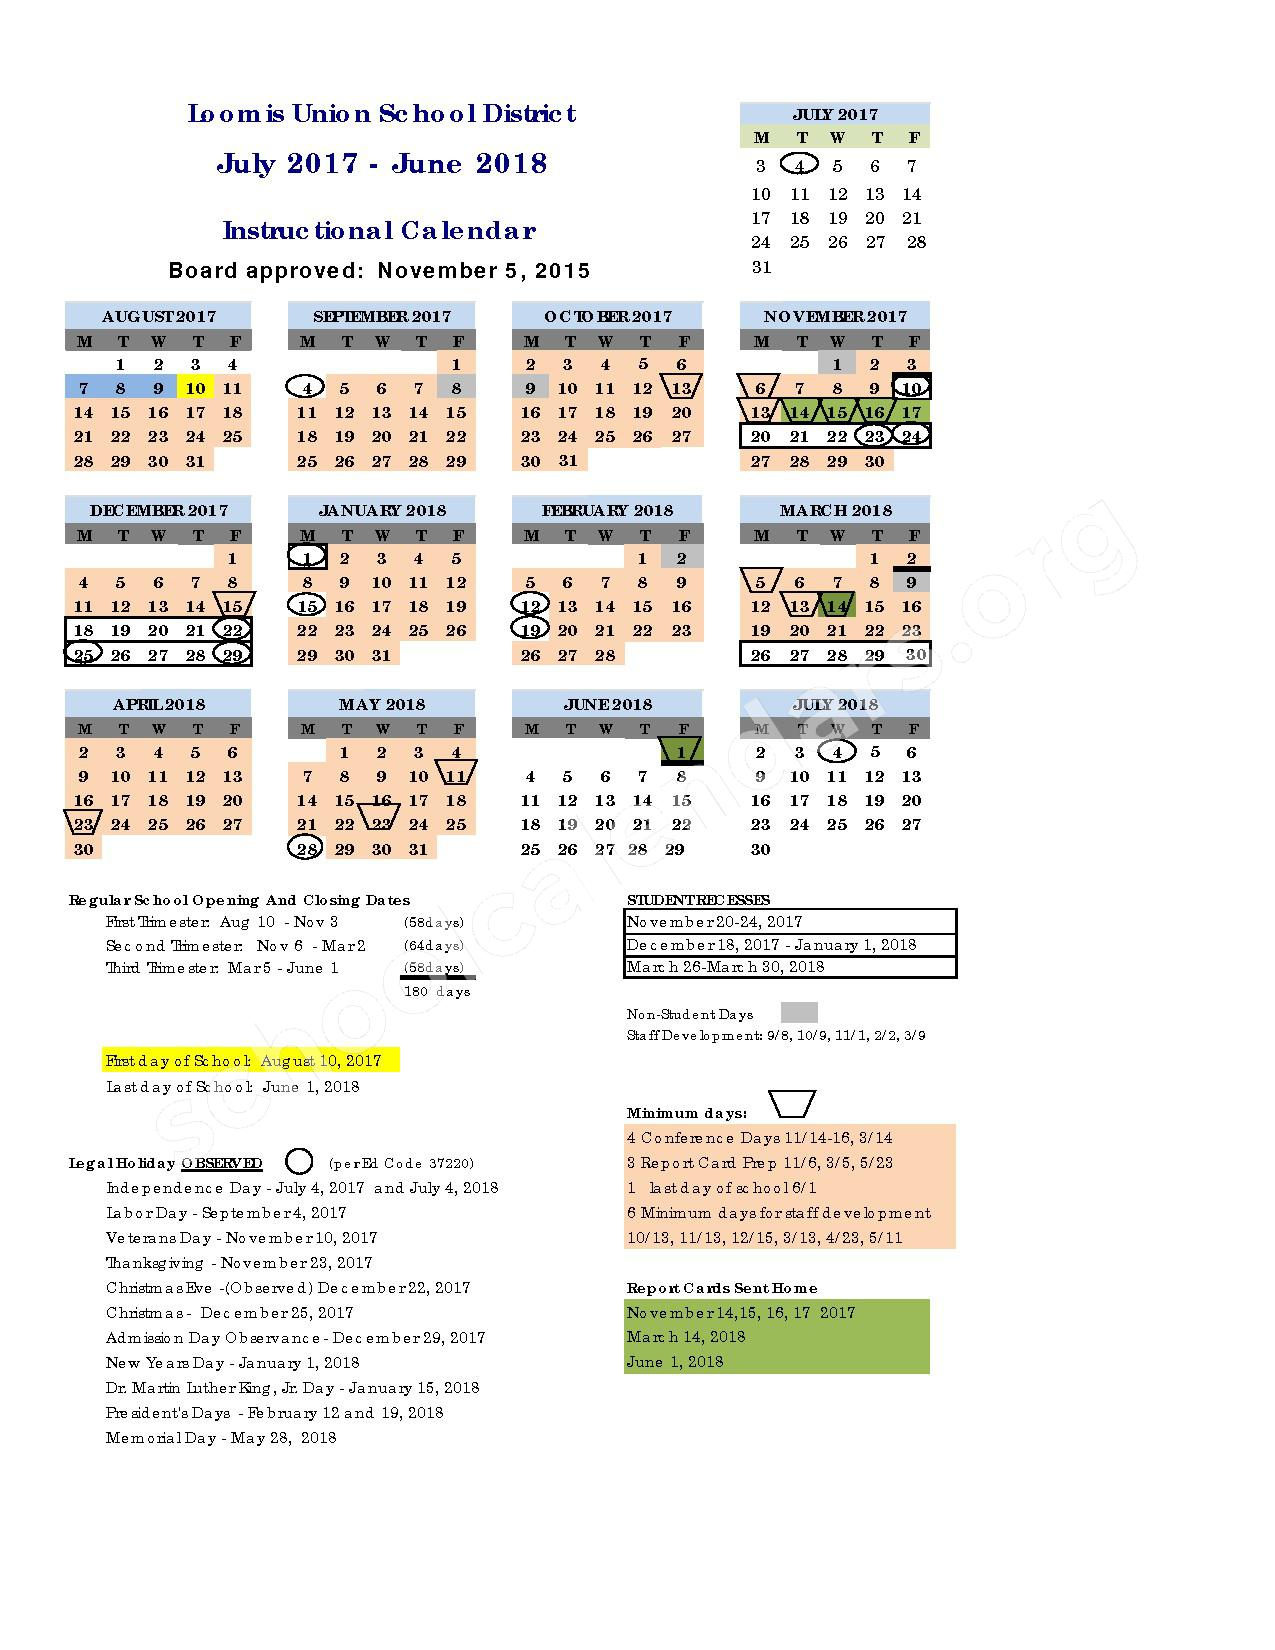 2017 - 2018 District Calendar – Loomis Union Elementary School District – page 1